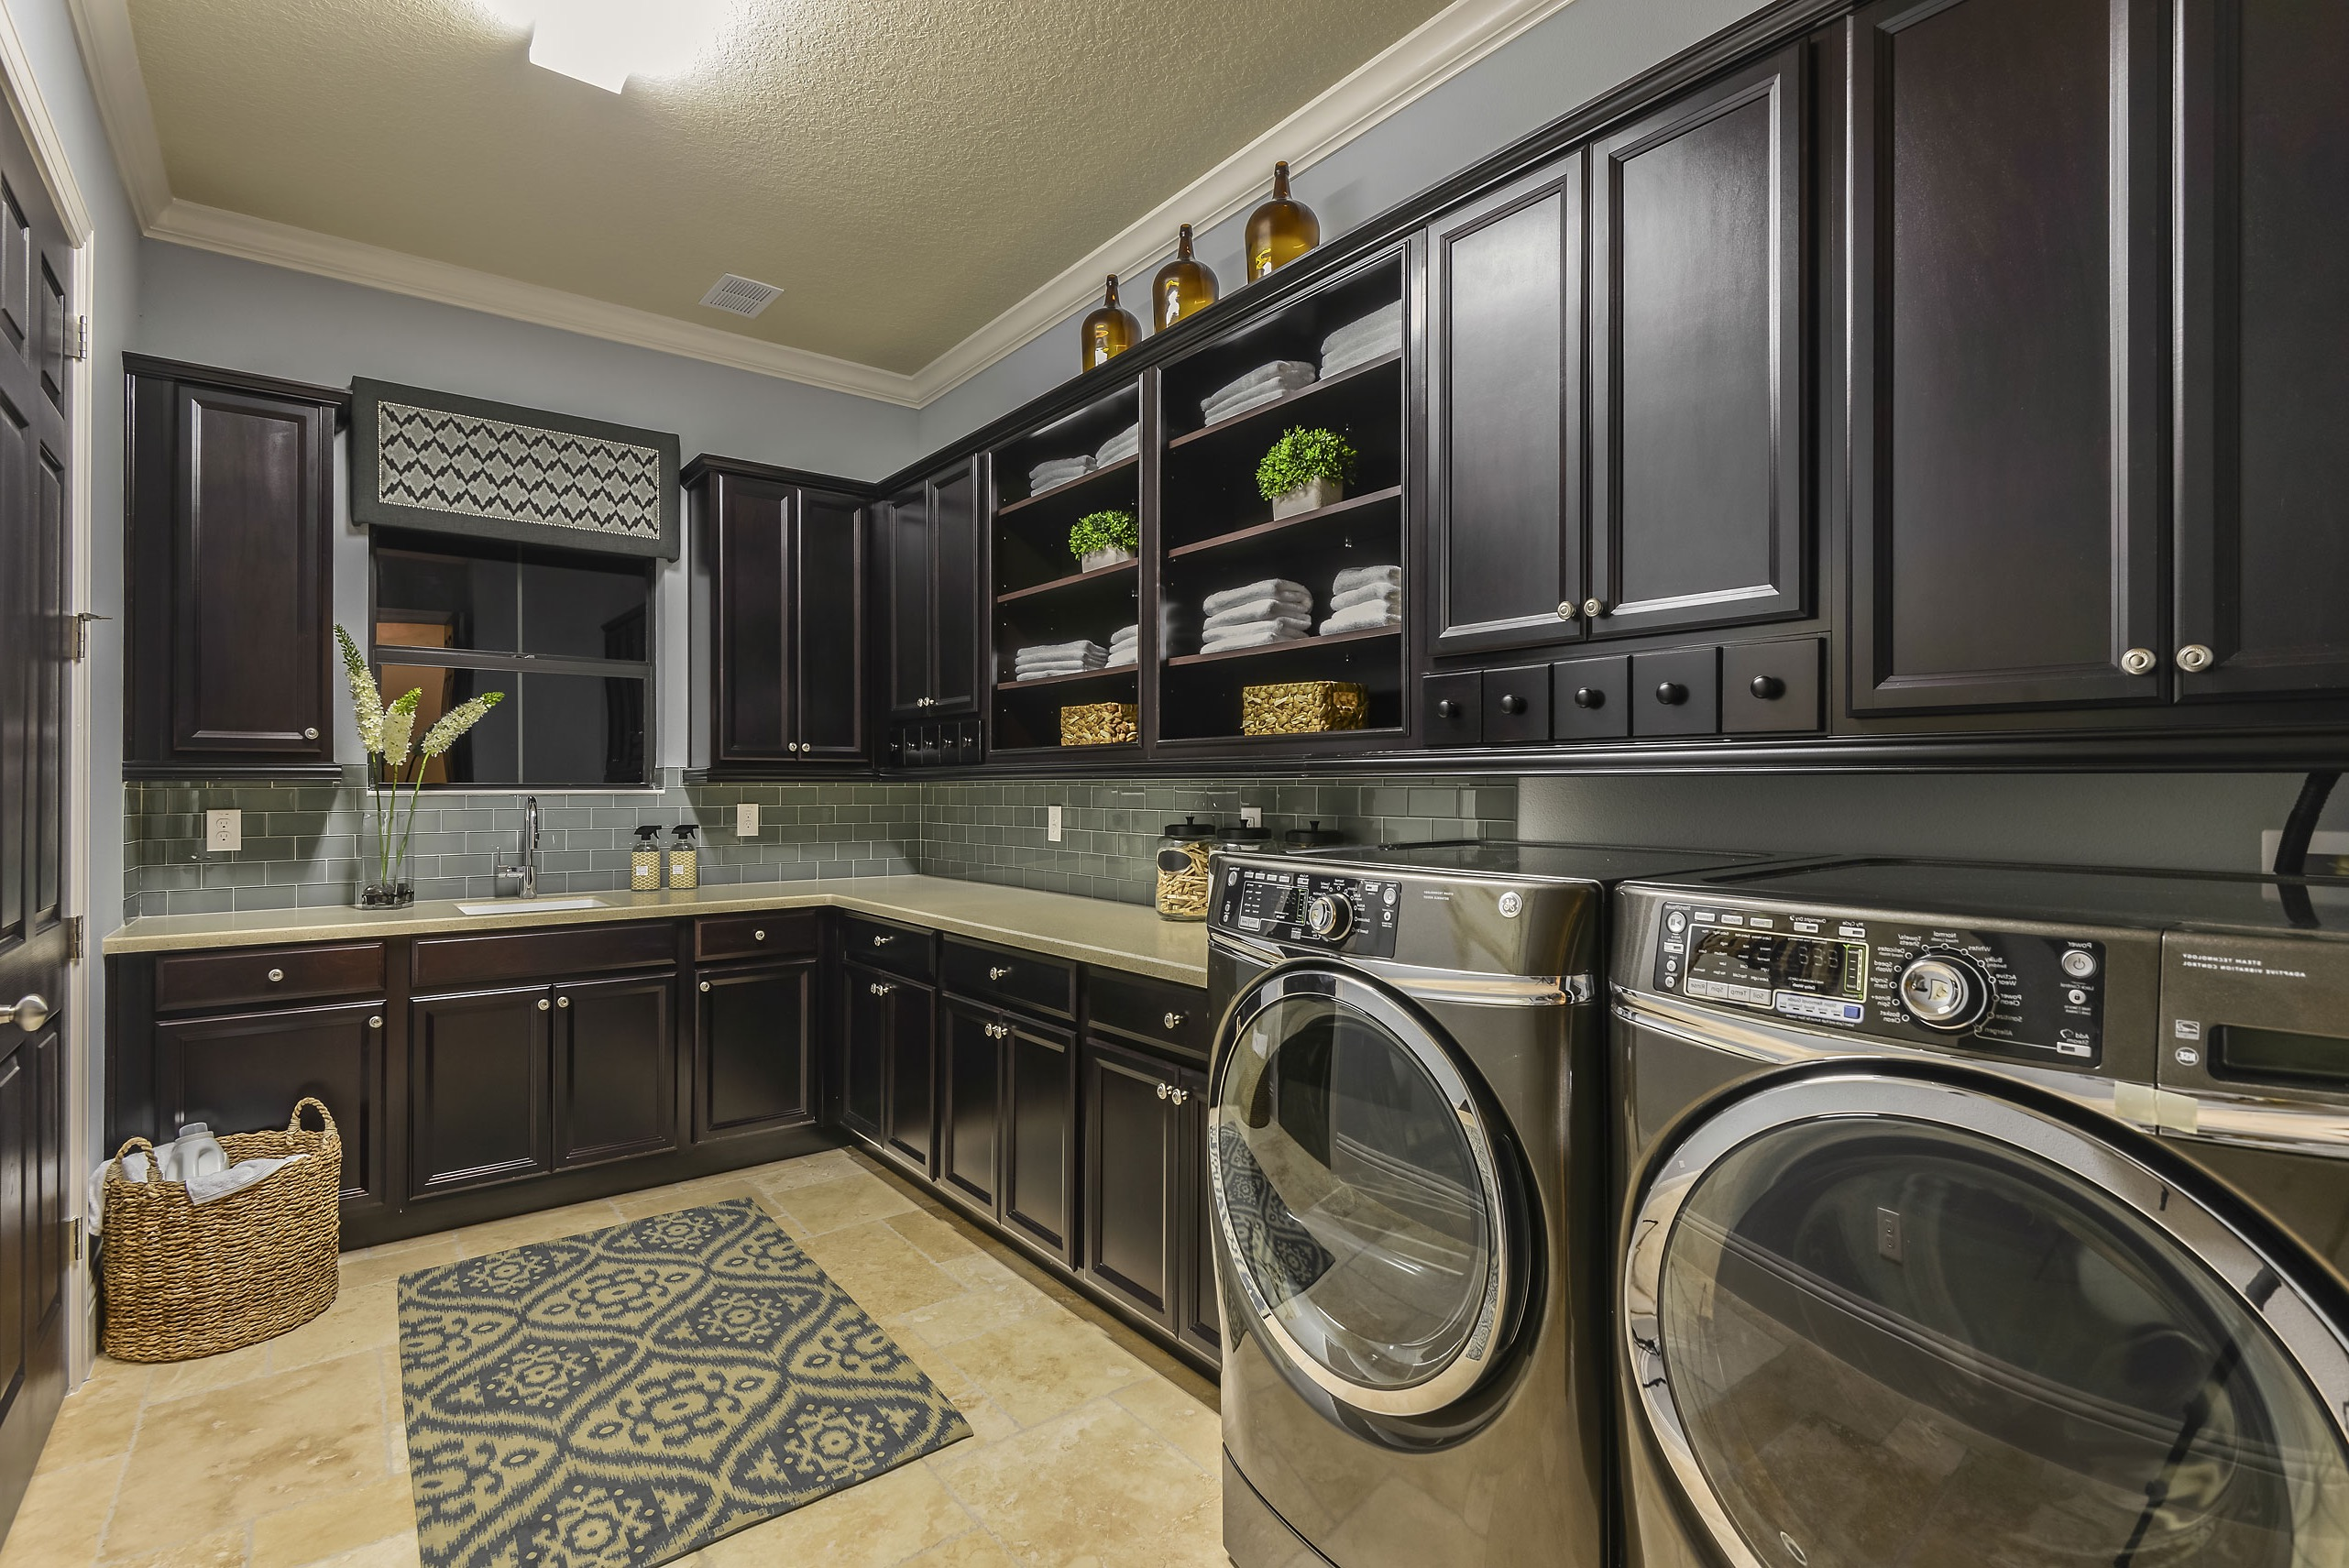 Spacious Modern Laundry Room With Black Storage Cabinets (Image 20 of 26)